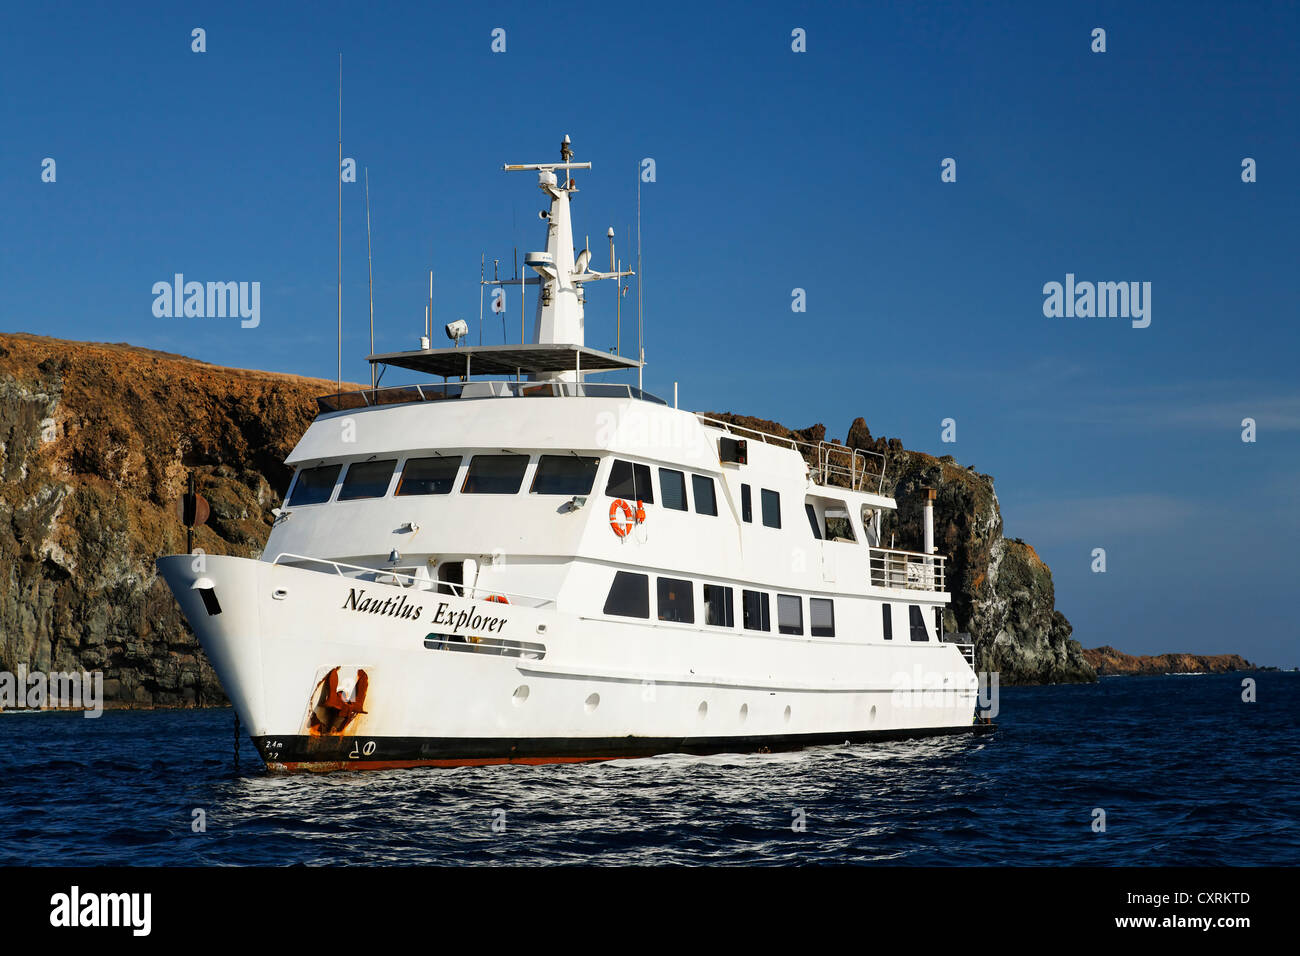 Ship, liveaboard, Indian Ocean Explorer, off the cliff coast, San Benedicto Island, near Socorro, Revillagigedo - Stock Image